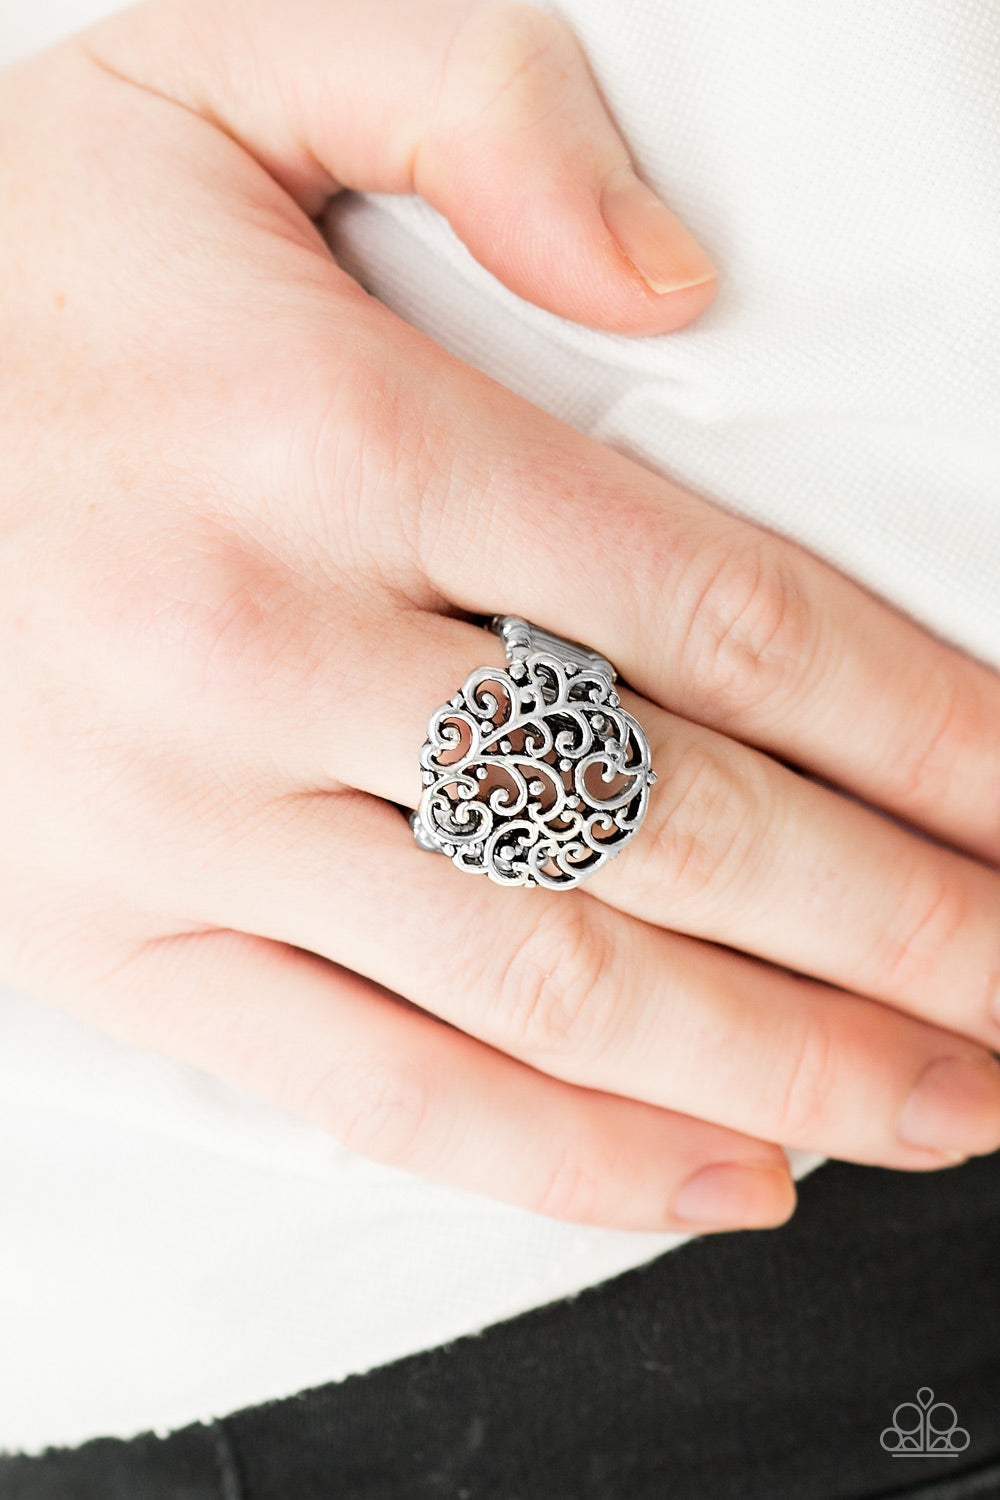 Thrills and Frills - Silver Paparazzi Ring - SavvyChicksJewelry